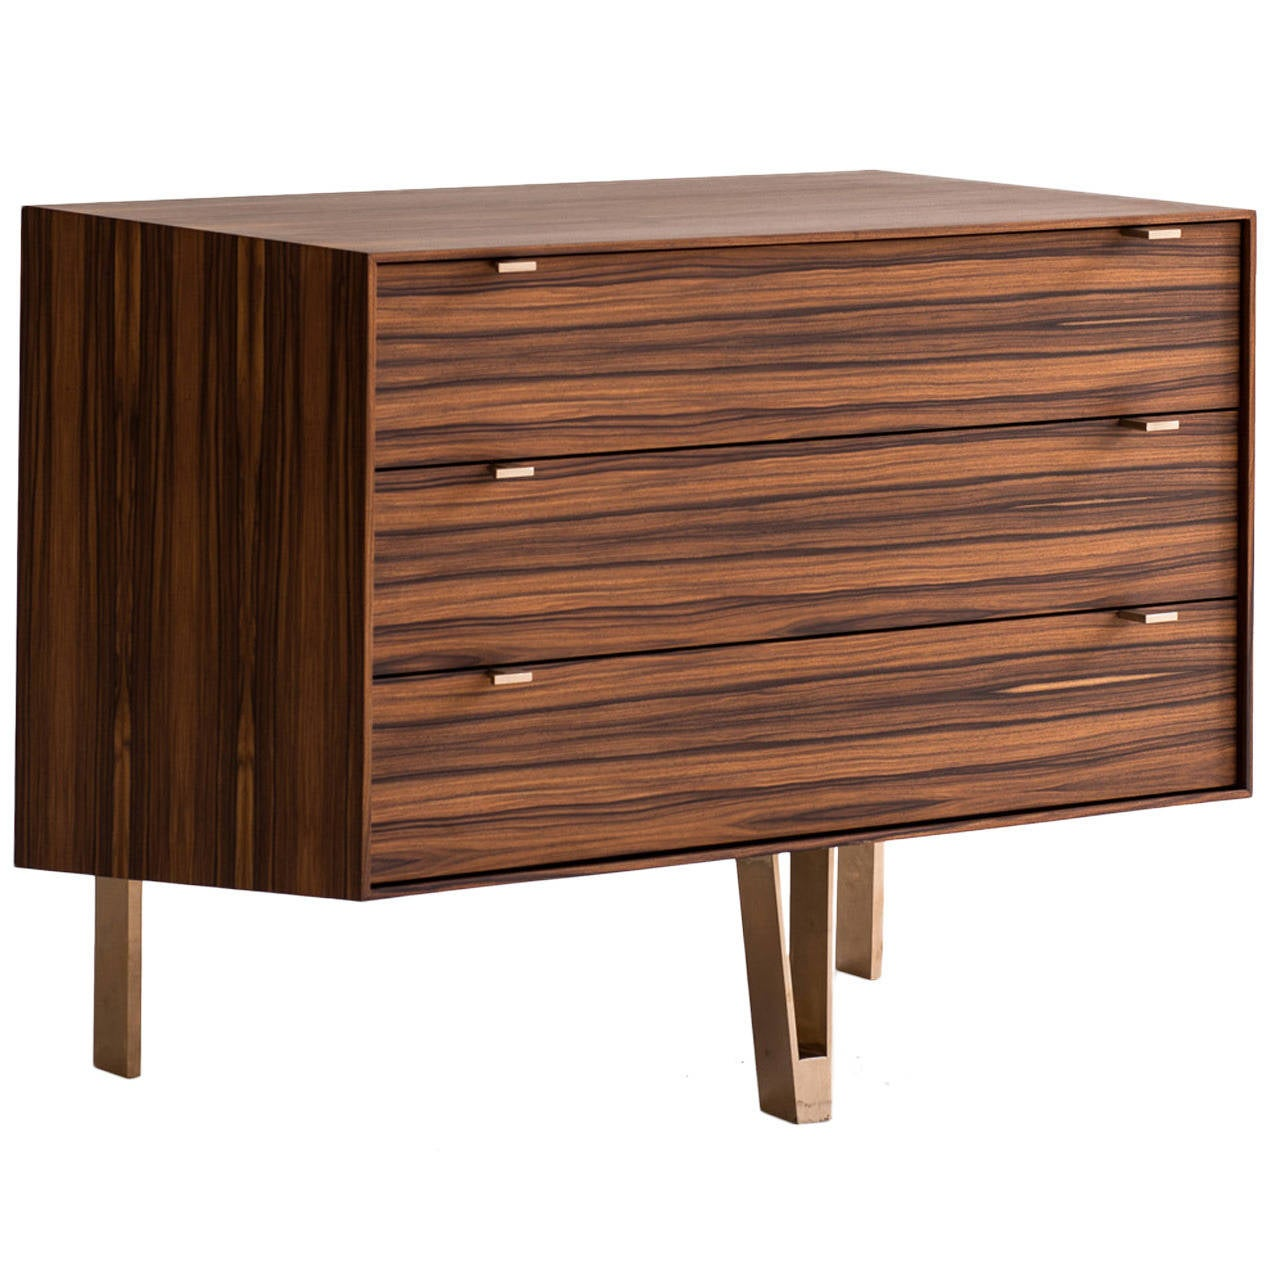 Saxton Cabinet / Side Table / Dresser in  South American Rosewood & Bronze Legs